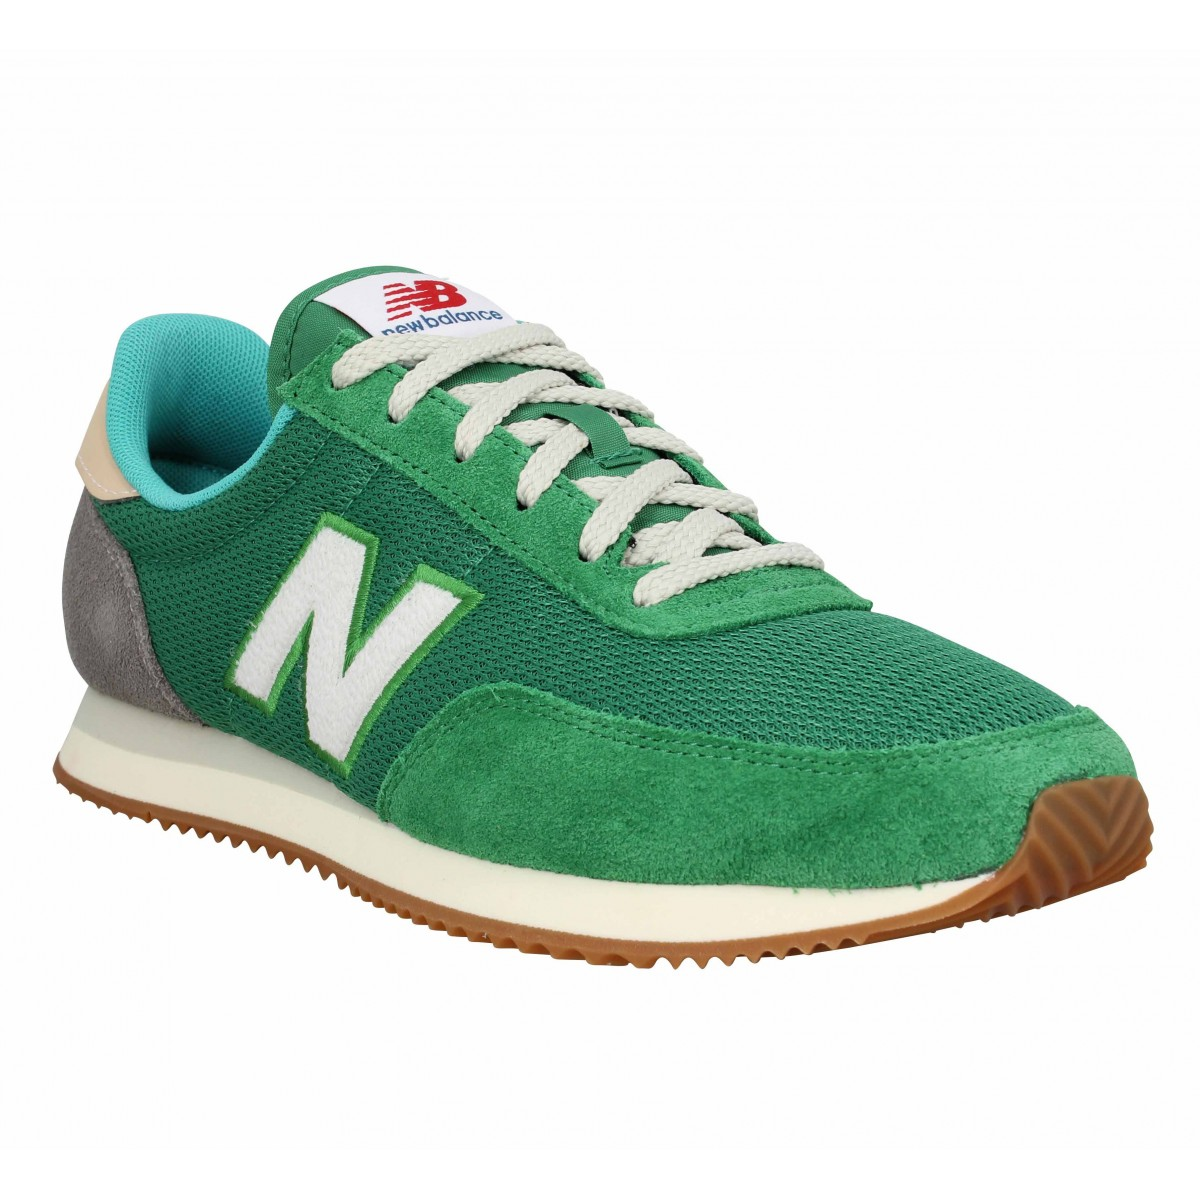 NEW BALANCE 720 YB velours toile Homme-44-Vert Cuir Textile ...